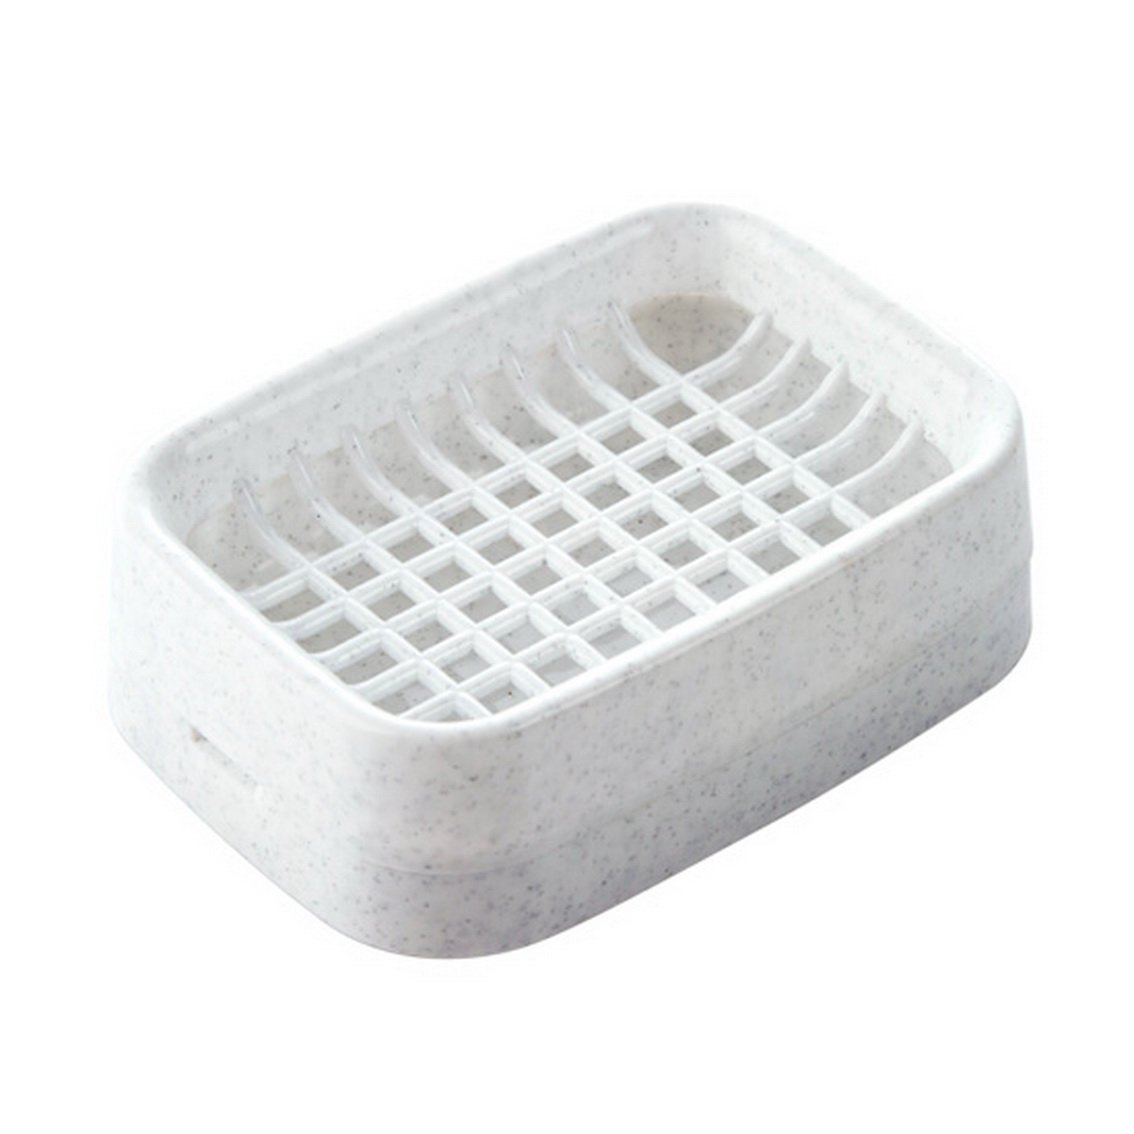 fengg2030shann Double draining soap dish soap holder bathroom toilet wash plastic soap box soap care. Soap box Soap box Bathroom soap box Soap box